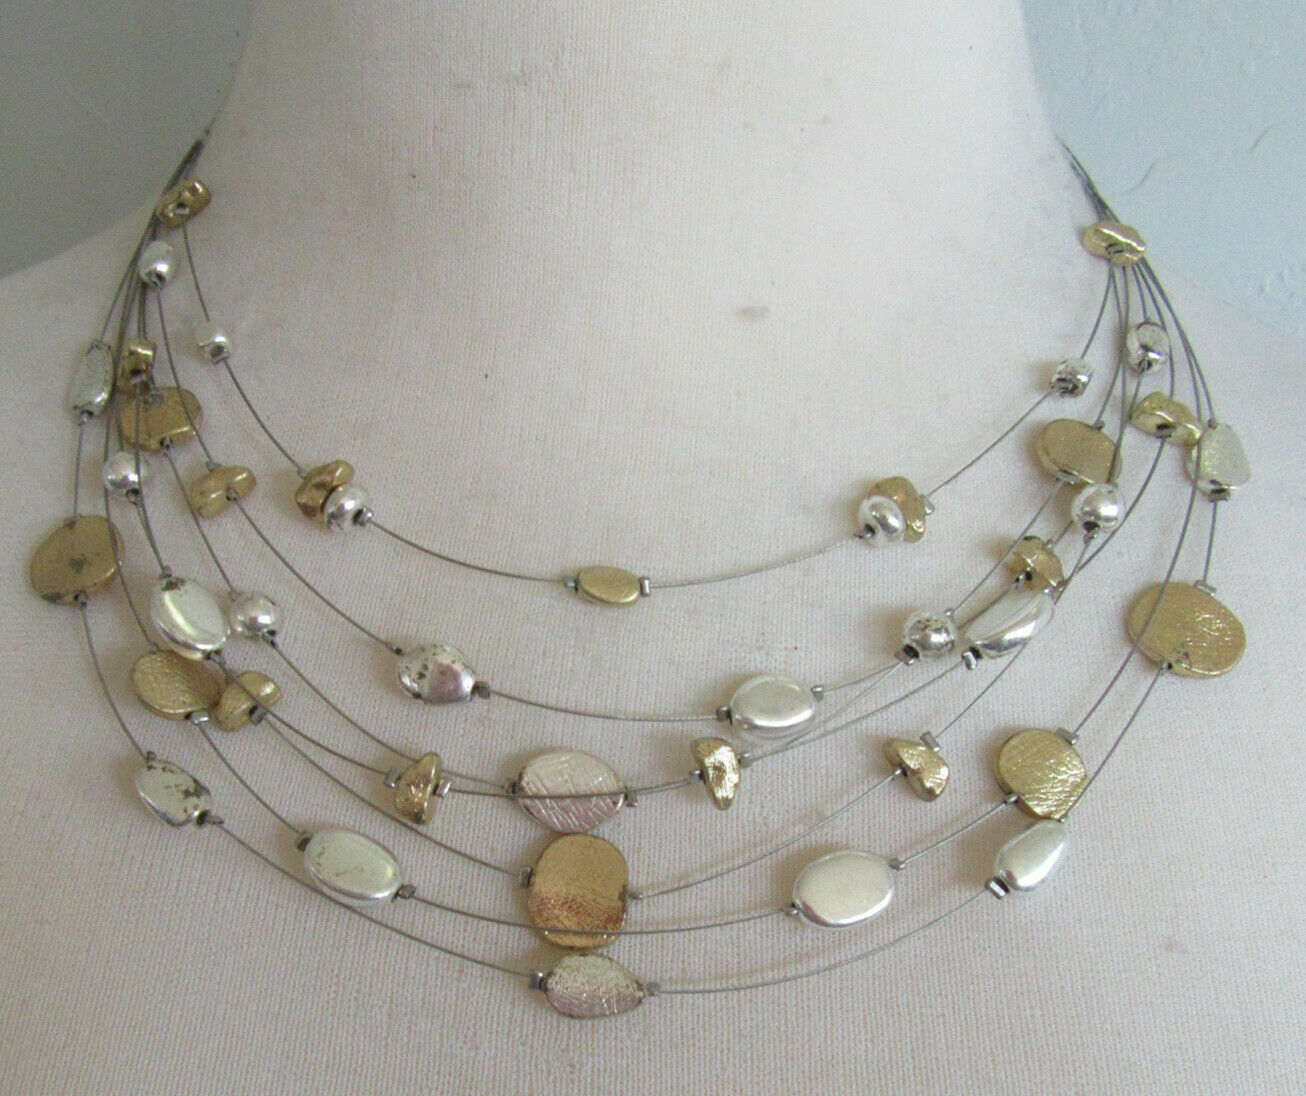 Lia Sophia Jewelry Skipping Stones Necklace In Silver And Gold RV 68 - $6.49